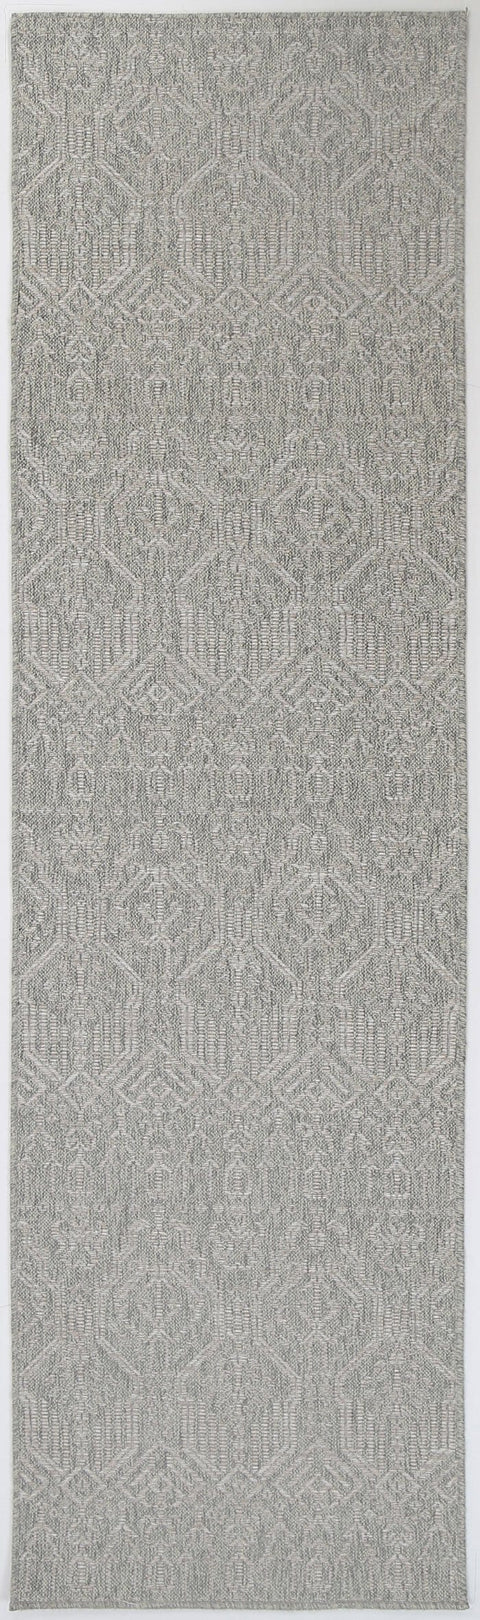 Roseau Grey and Ivory Geometric Indoor Outdoor Runner Rug